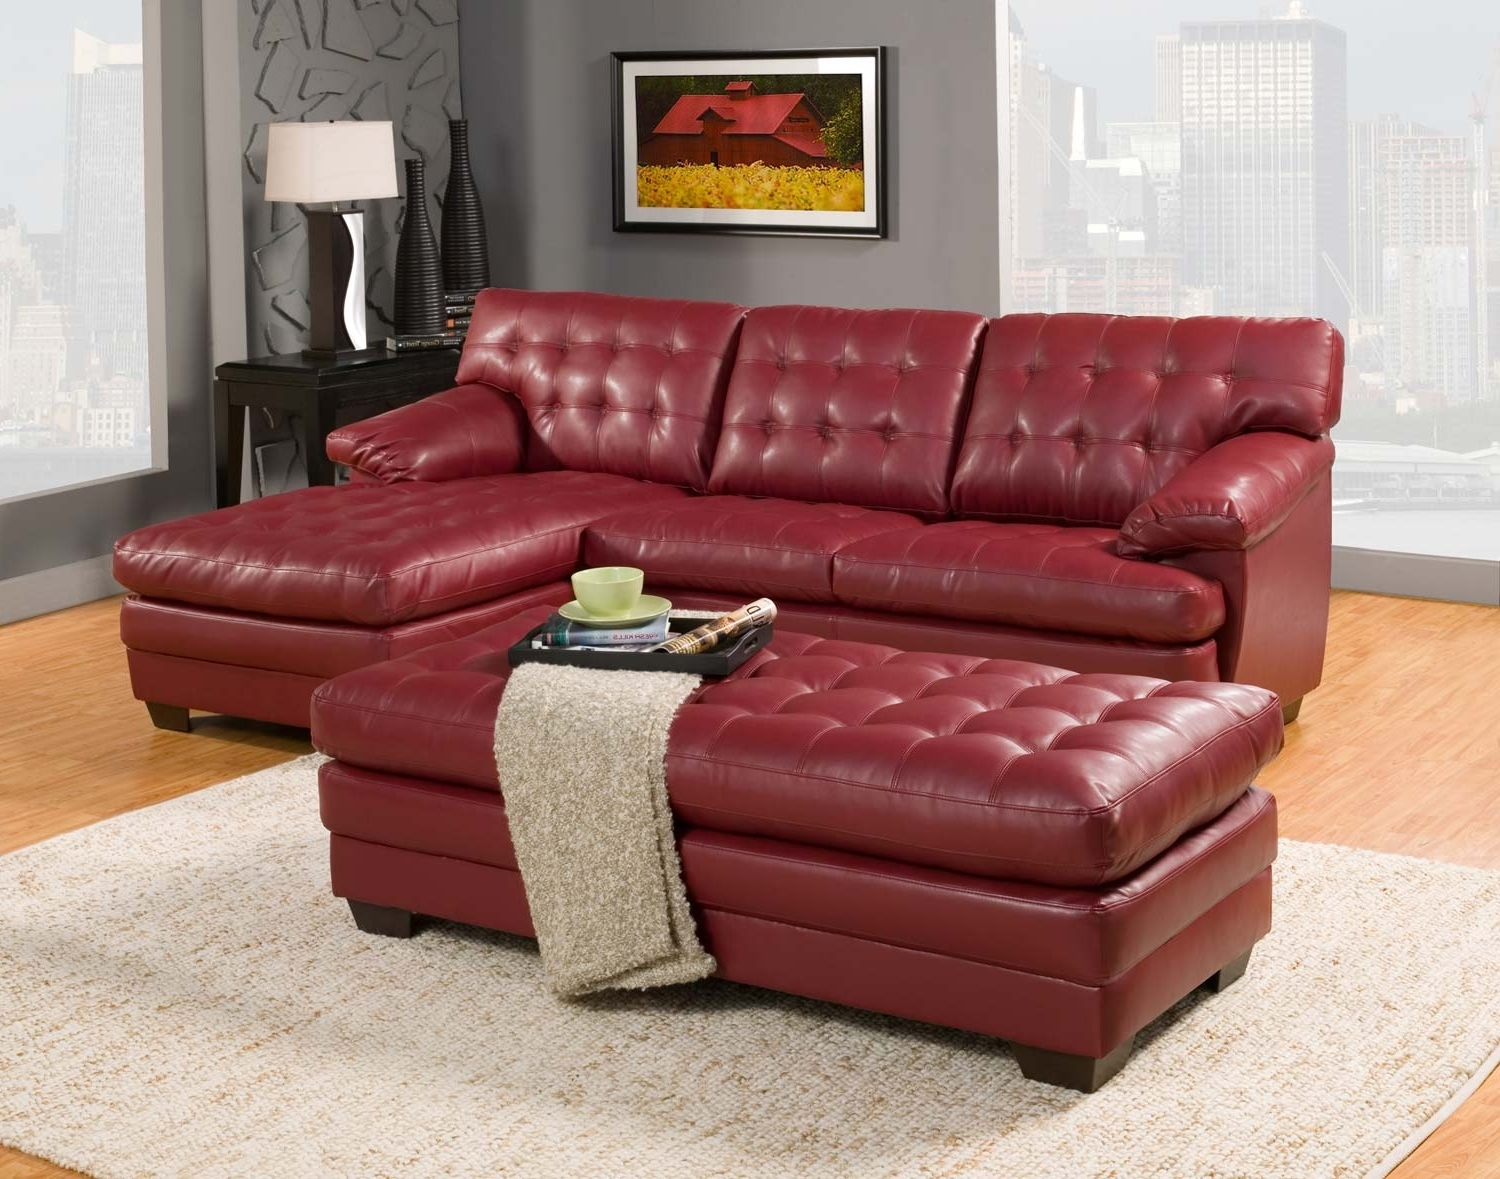 Trendy Red Leather Sectionals With Ottoman Inside Red Sectional Sofa With Ottoman (View 17 of 20)